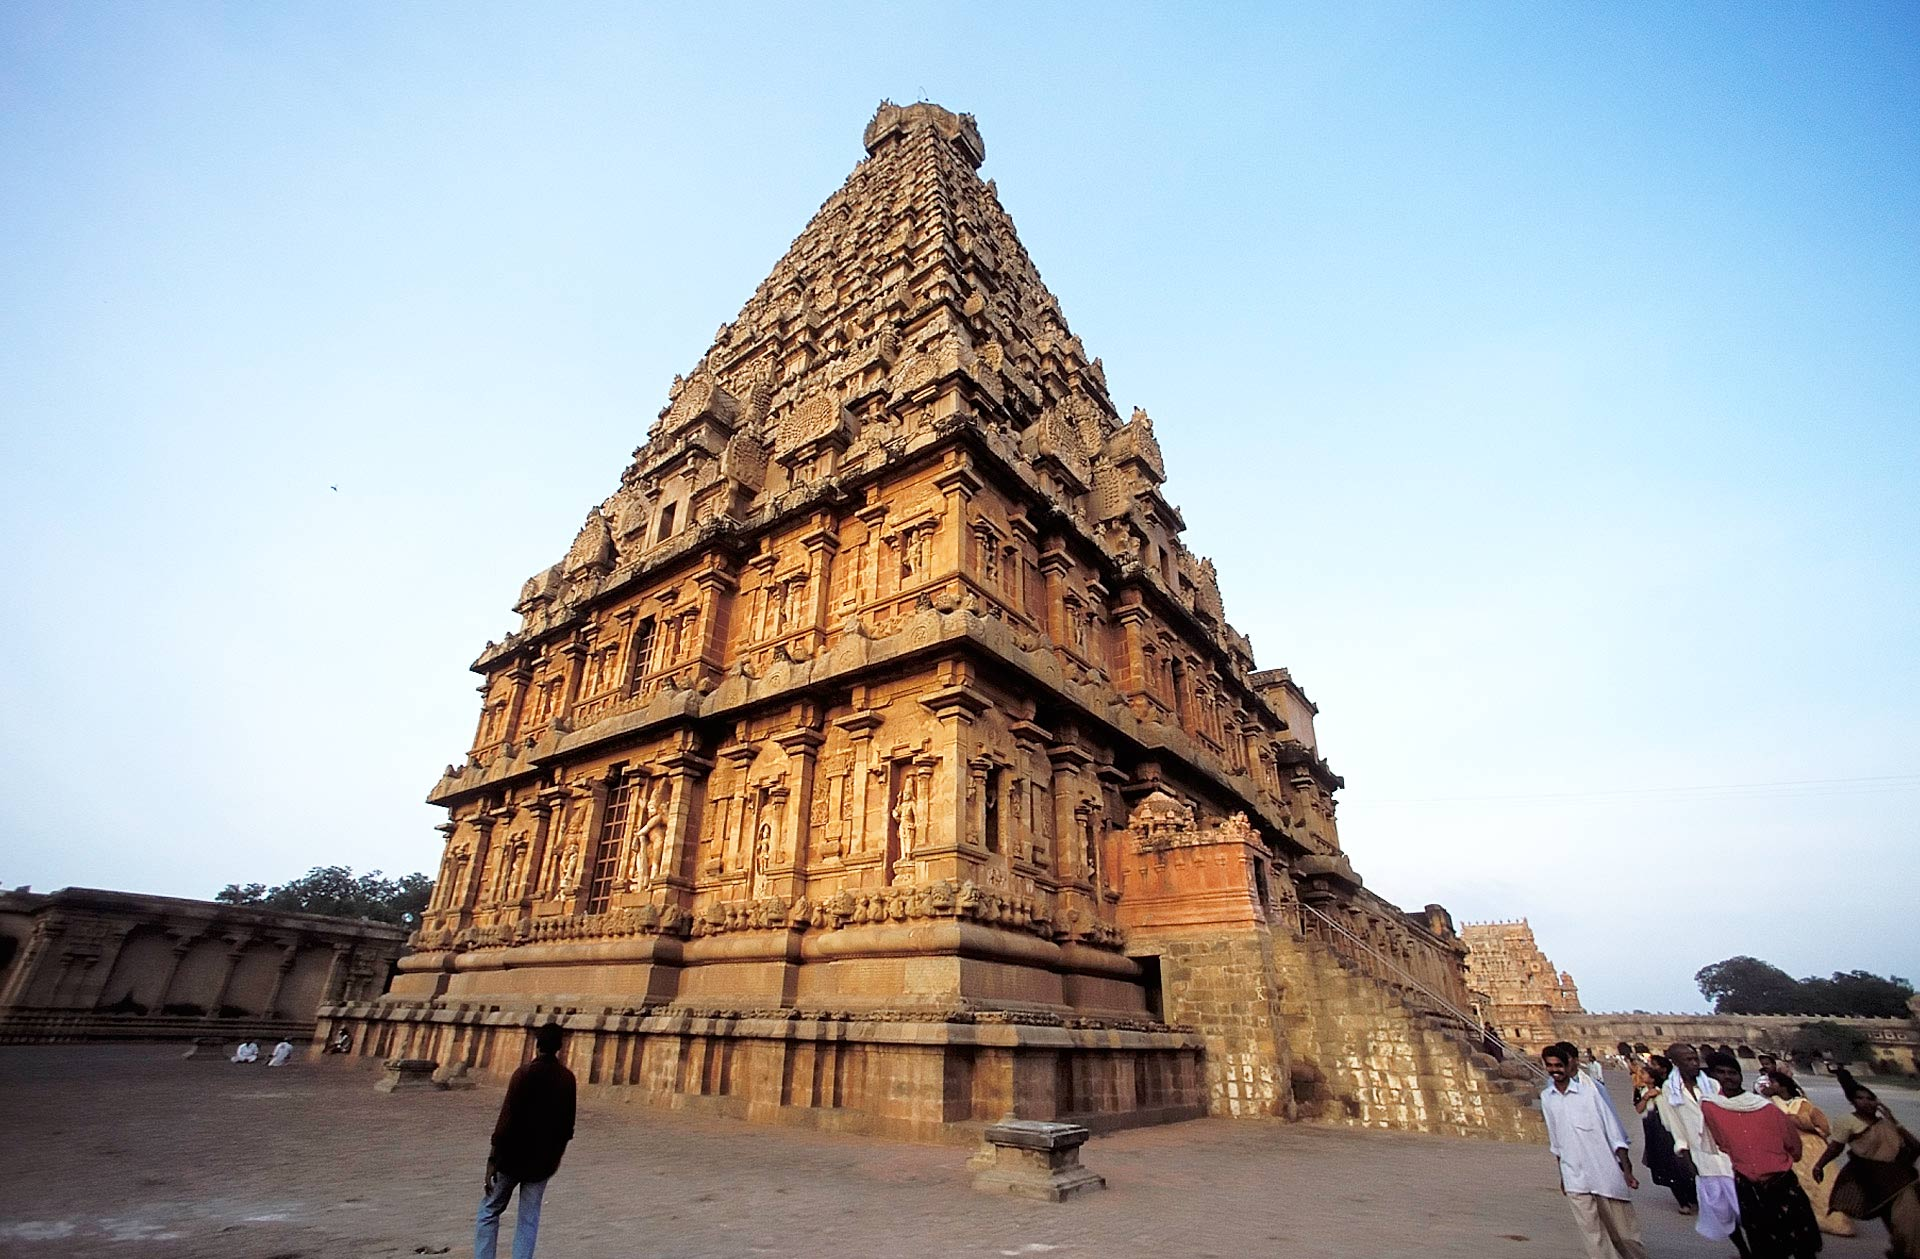 Main Temple of the Brihadisvara Temple, Thanjavur, Tamil Nadu, India